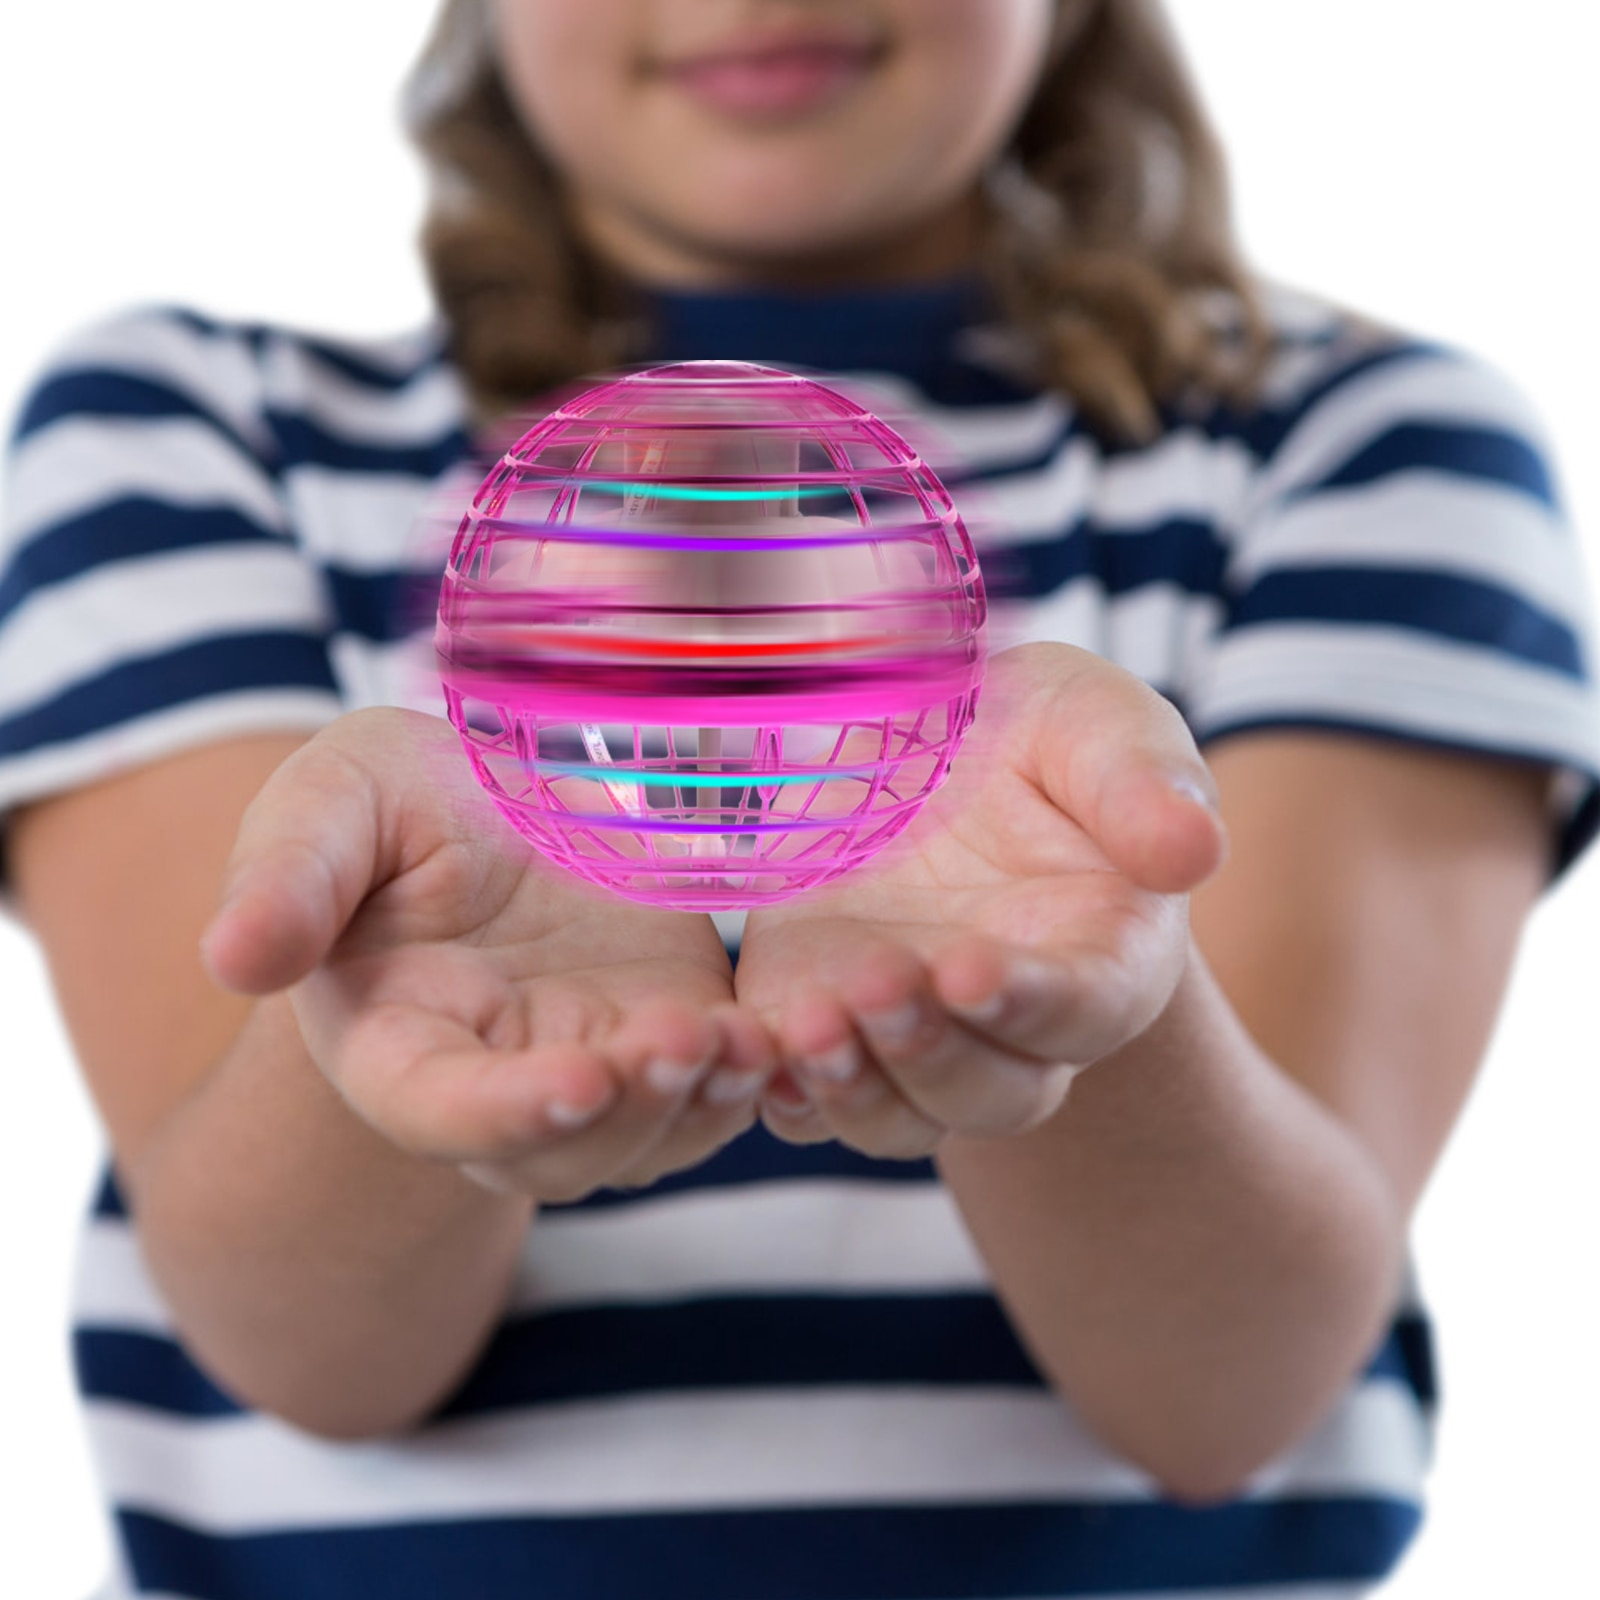 1Pc Funny Gyrator Flying Spinner 360° Rotating Fly Ball with Colorful RGB Light Hand Gesture Control Gift Toys for Kid Adult